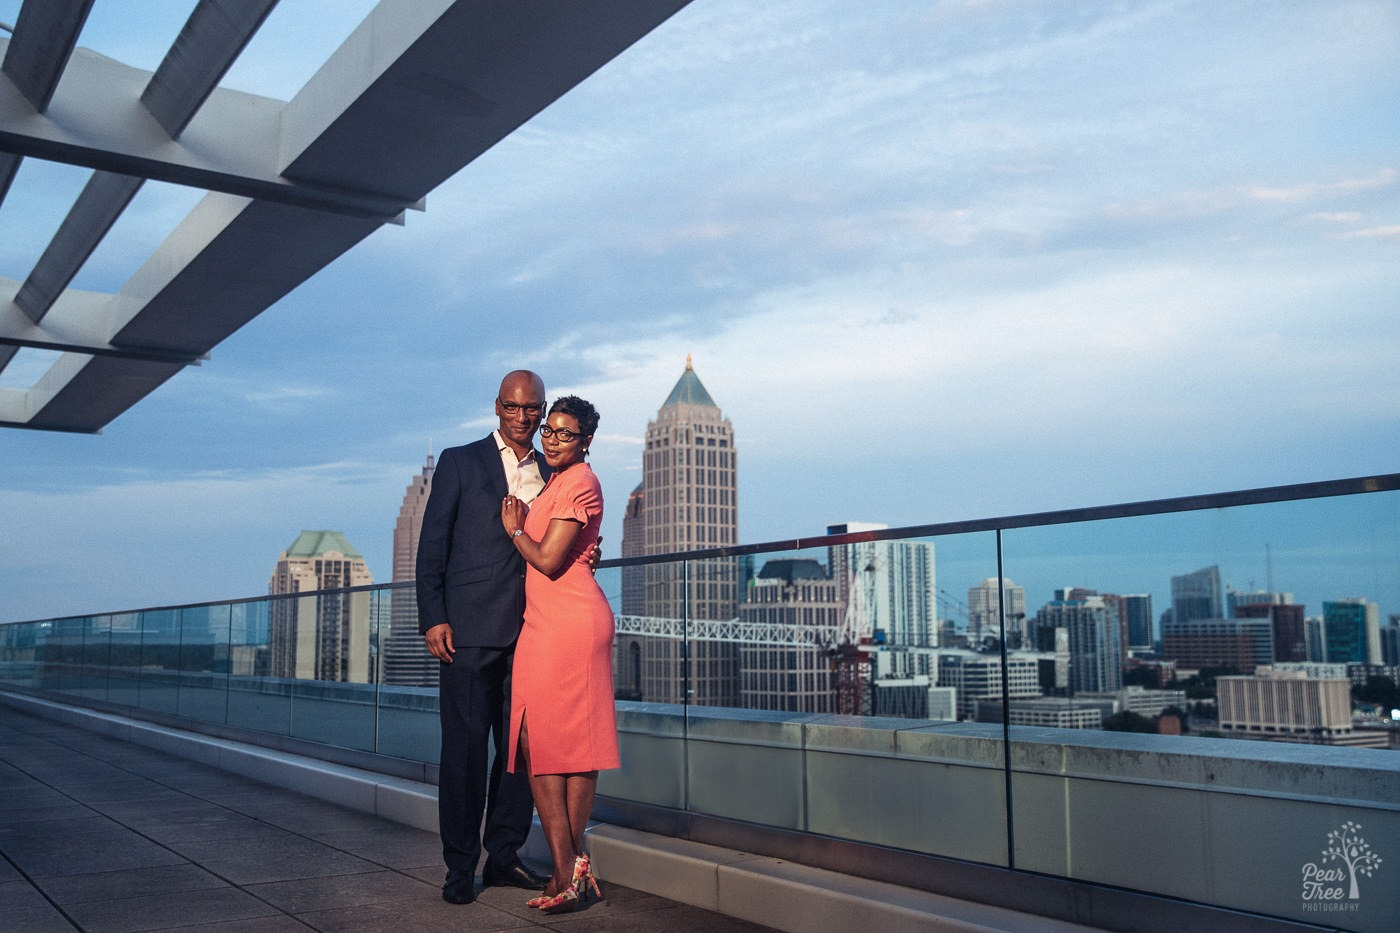 Engaged couple in fancy dress on Atlantic Station 18th floor balcony with Atlanta skyline in background